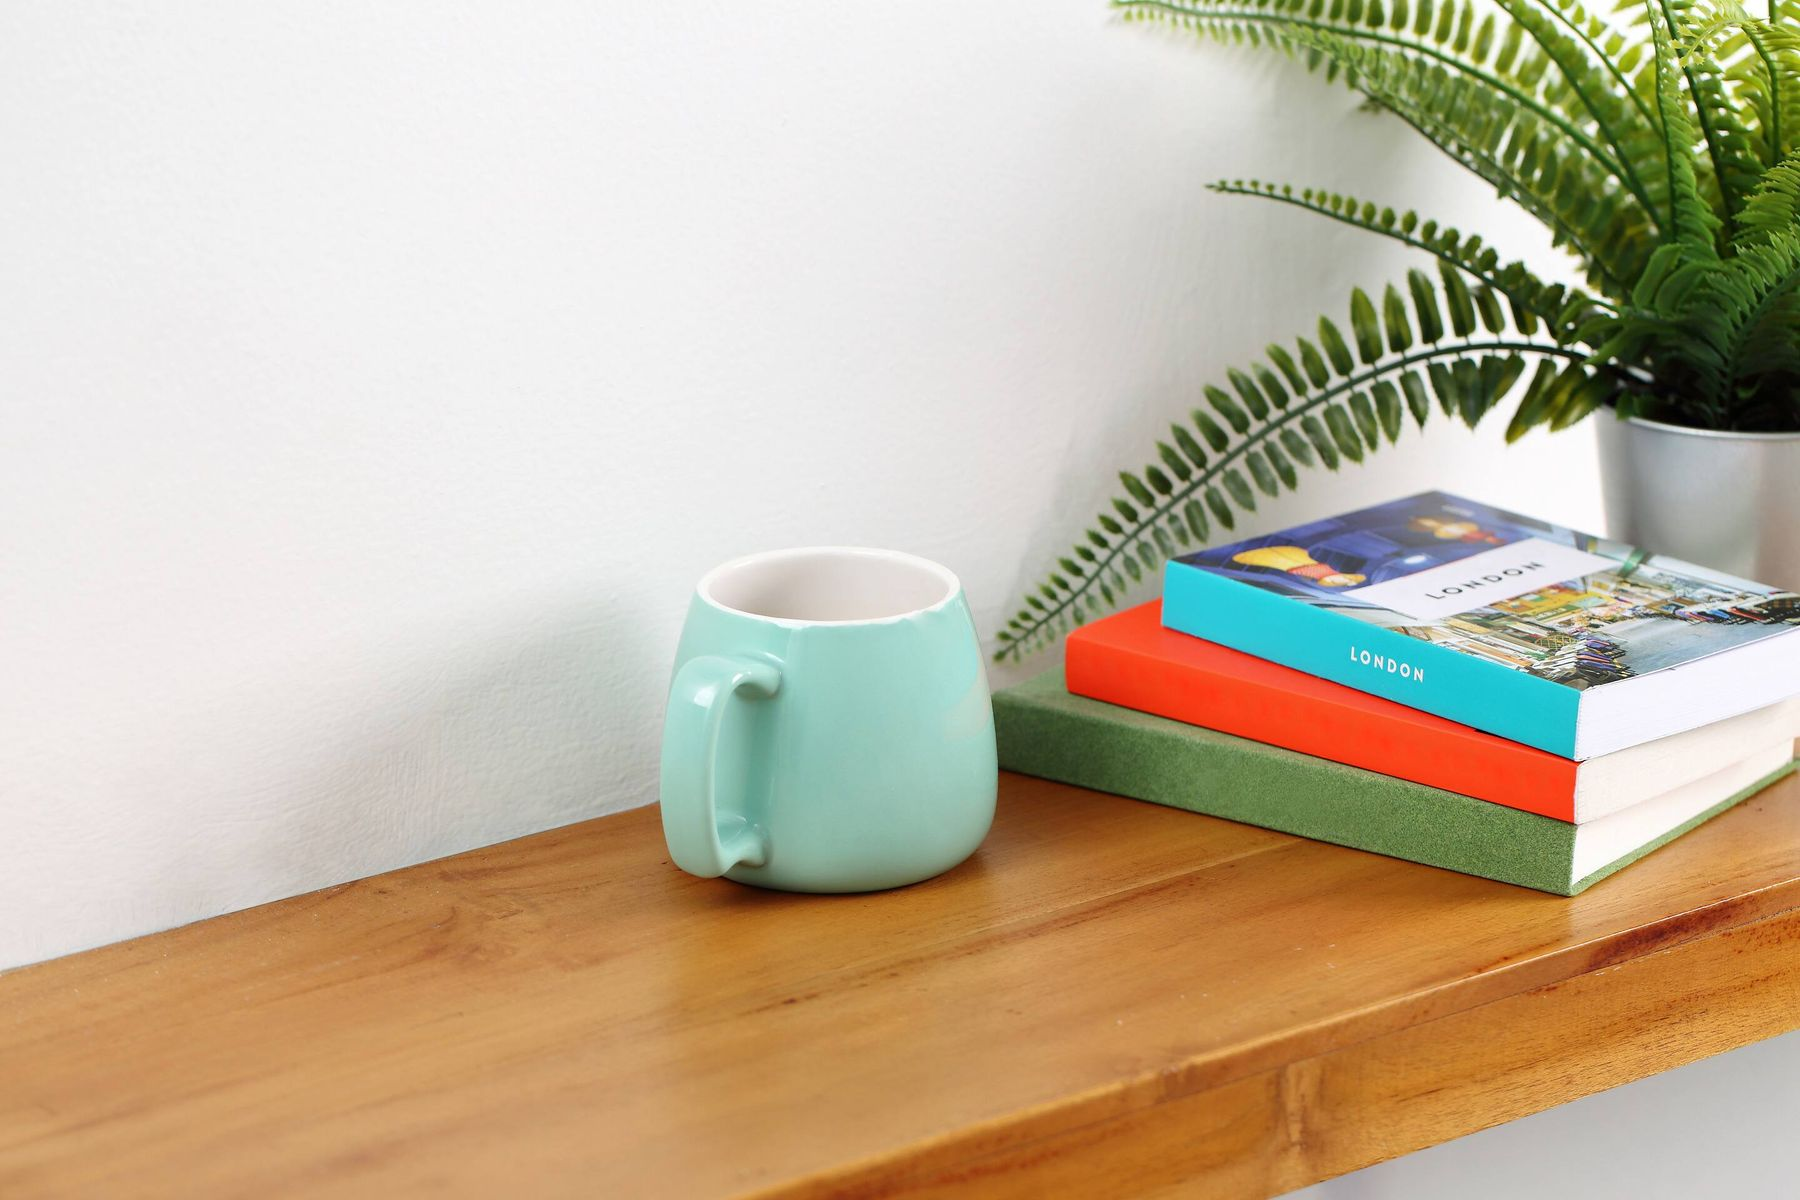 books, porcelain mug and potted plant on wood sideboard